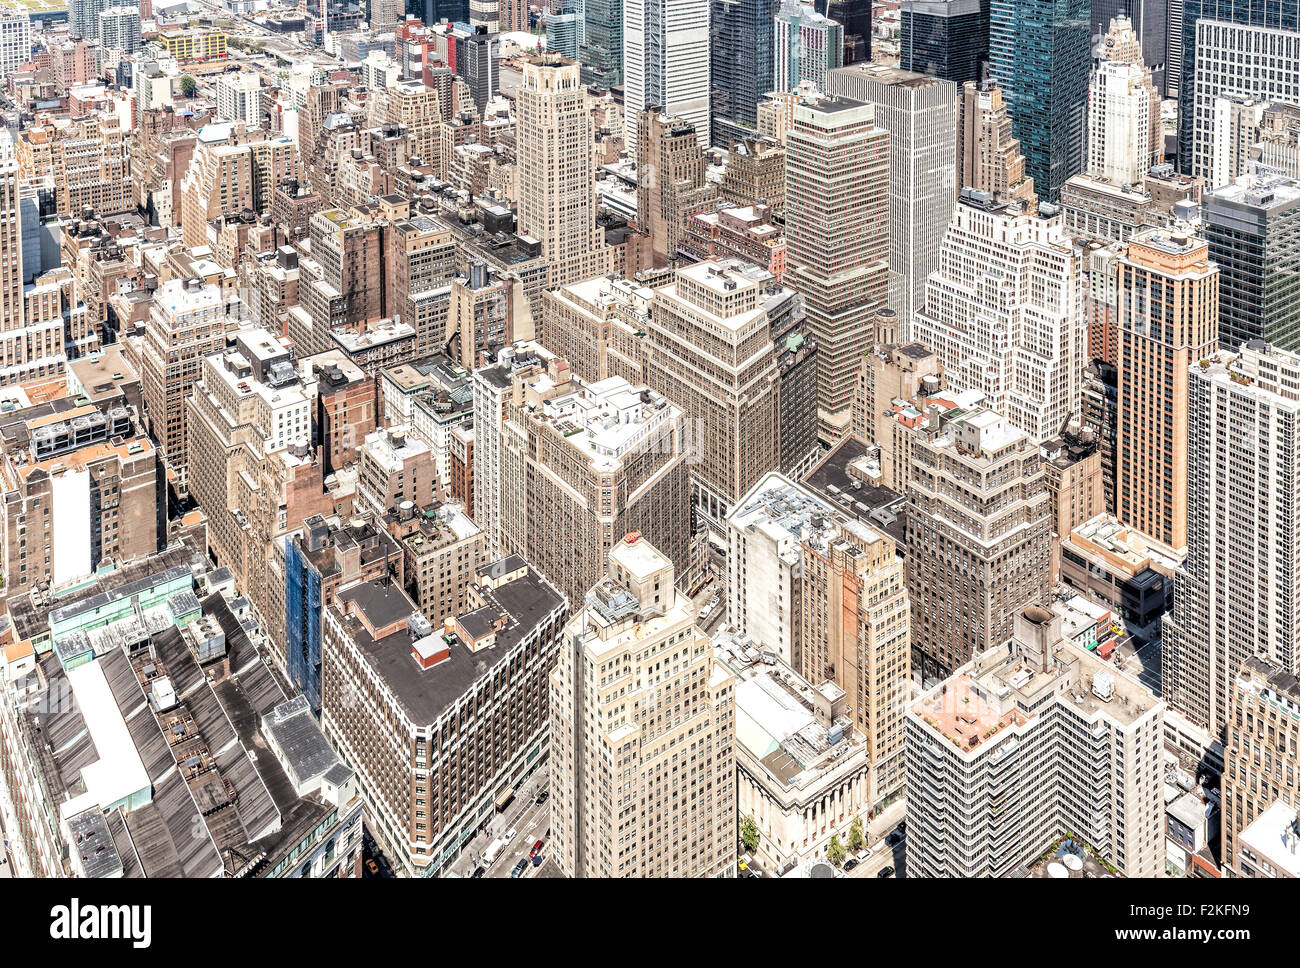 Aerial view of Manhattan's downtown, NYC, USA. - Stock Image